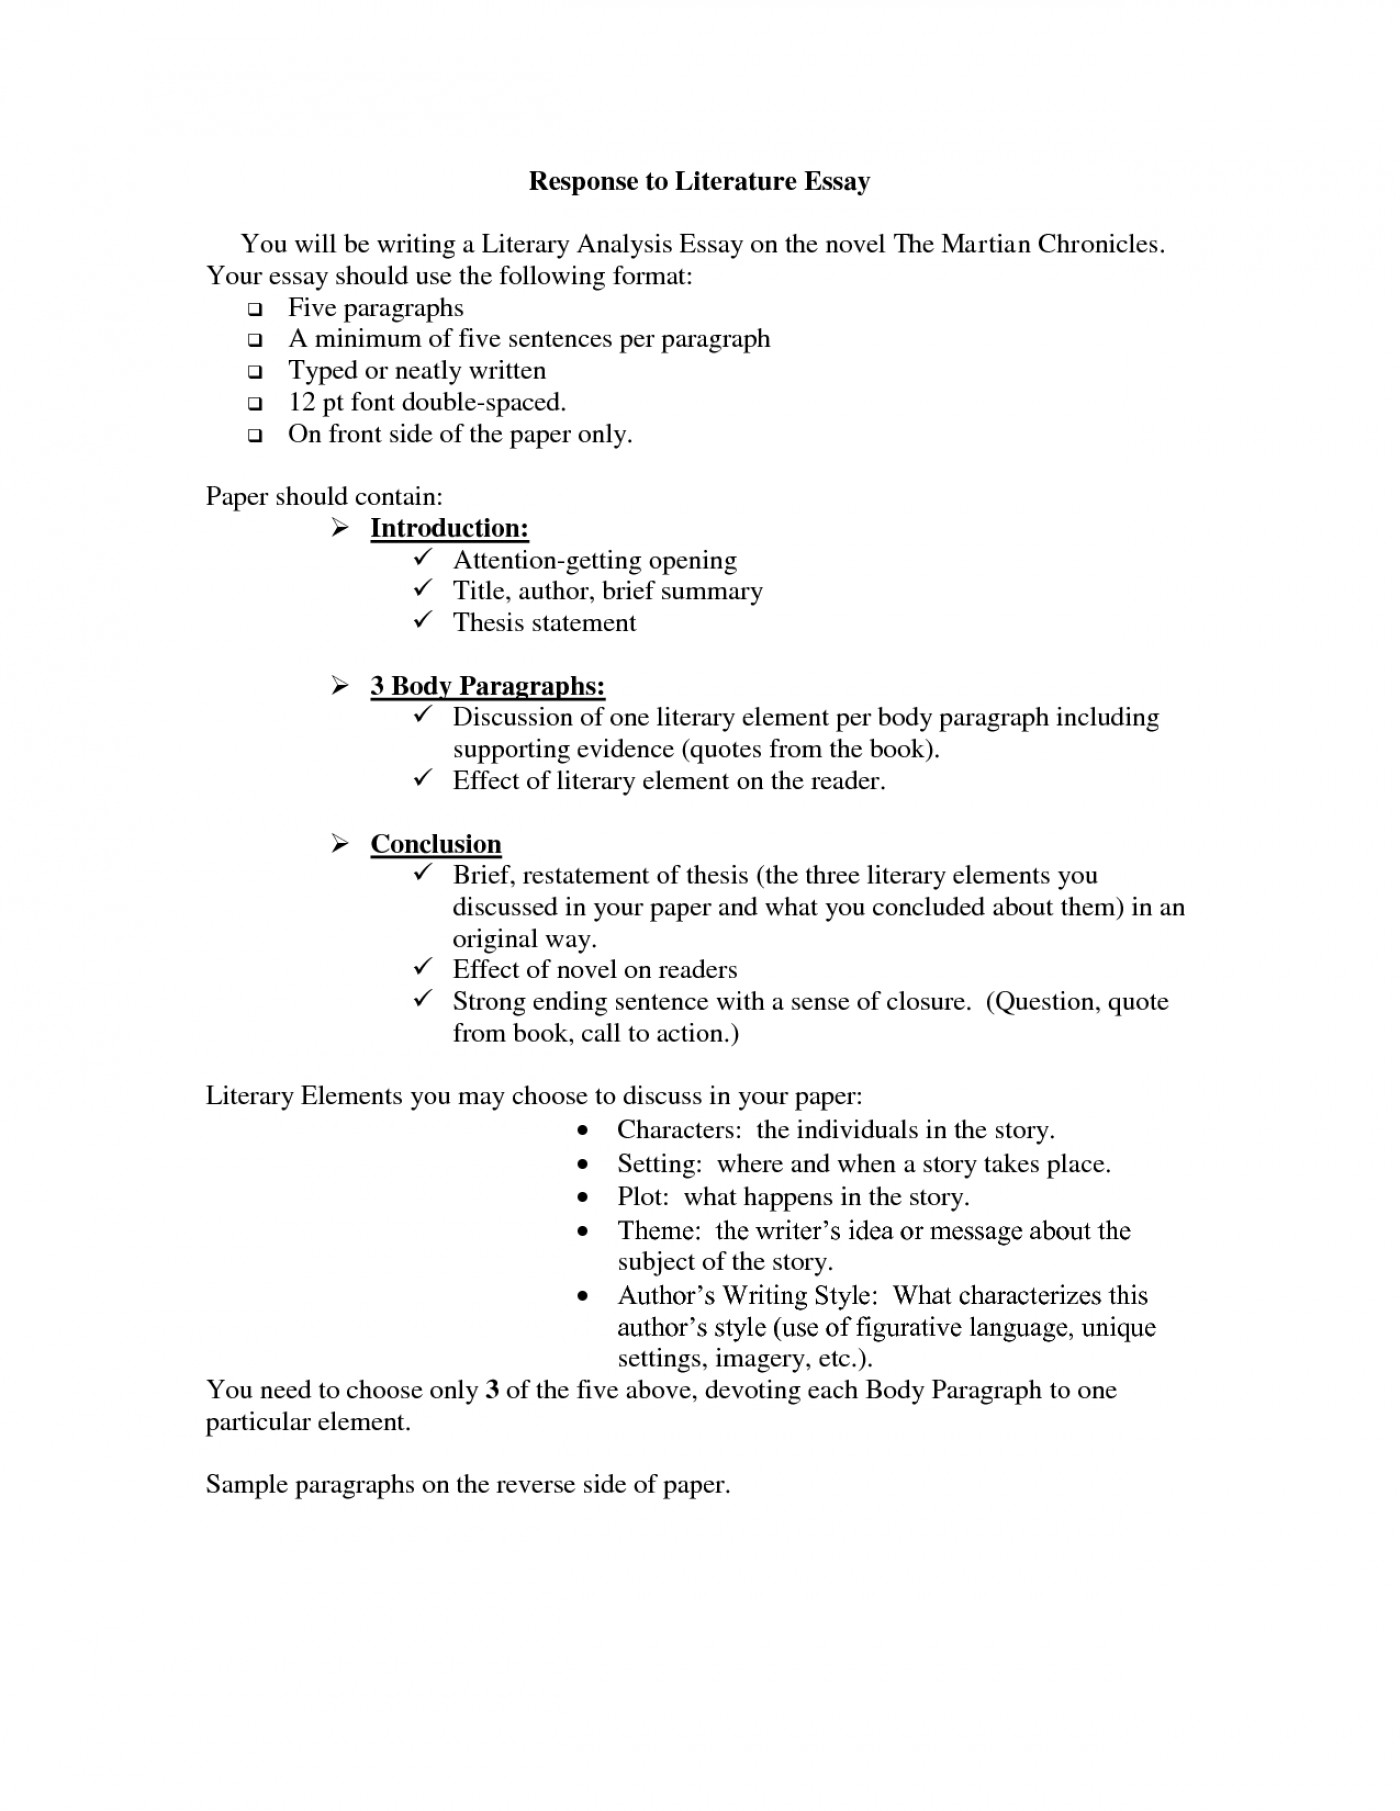 002 Literary Essay Help Responseature Character Sketch Macbeth Introduction College To Example 5th Grade 10th 8th 4th Examples Student Responding Sample 9th High School 6th 3rd How Write Shocking A On 1400